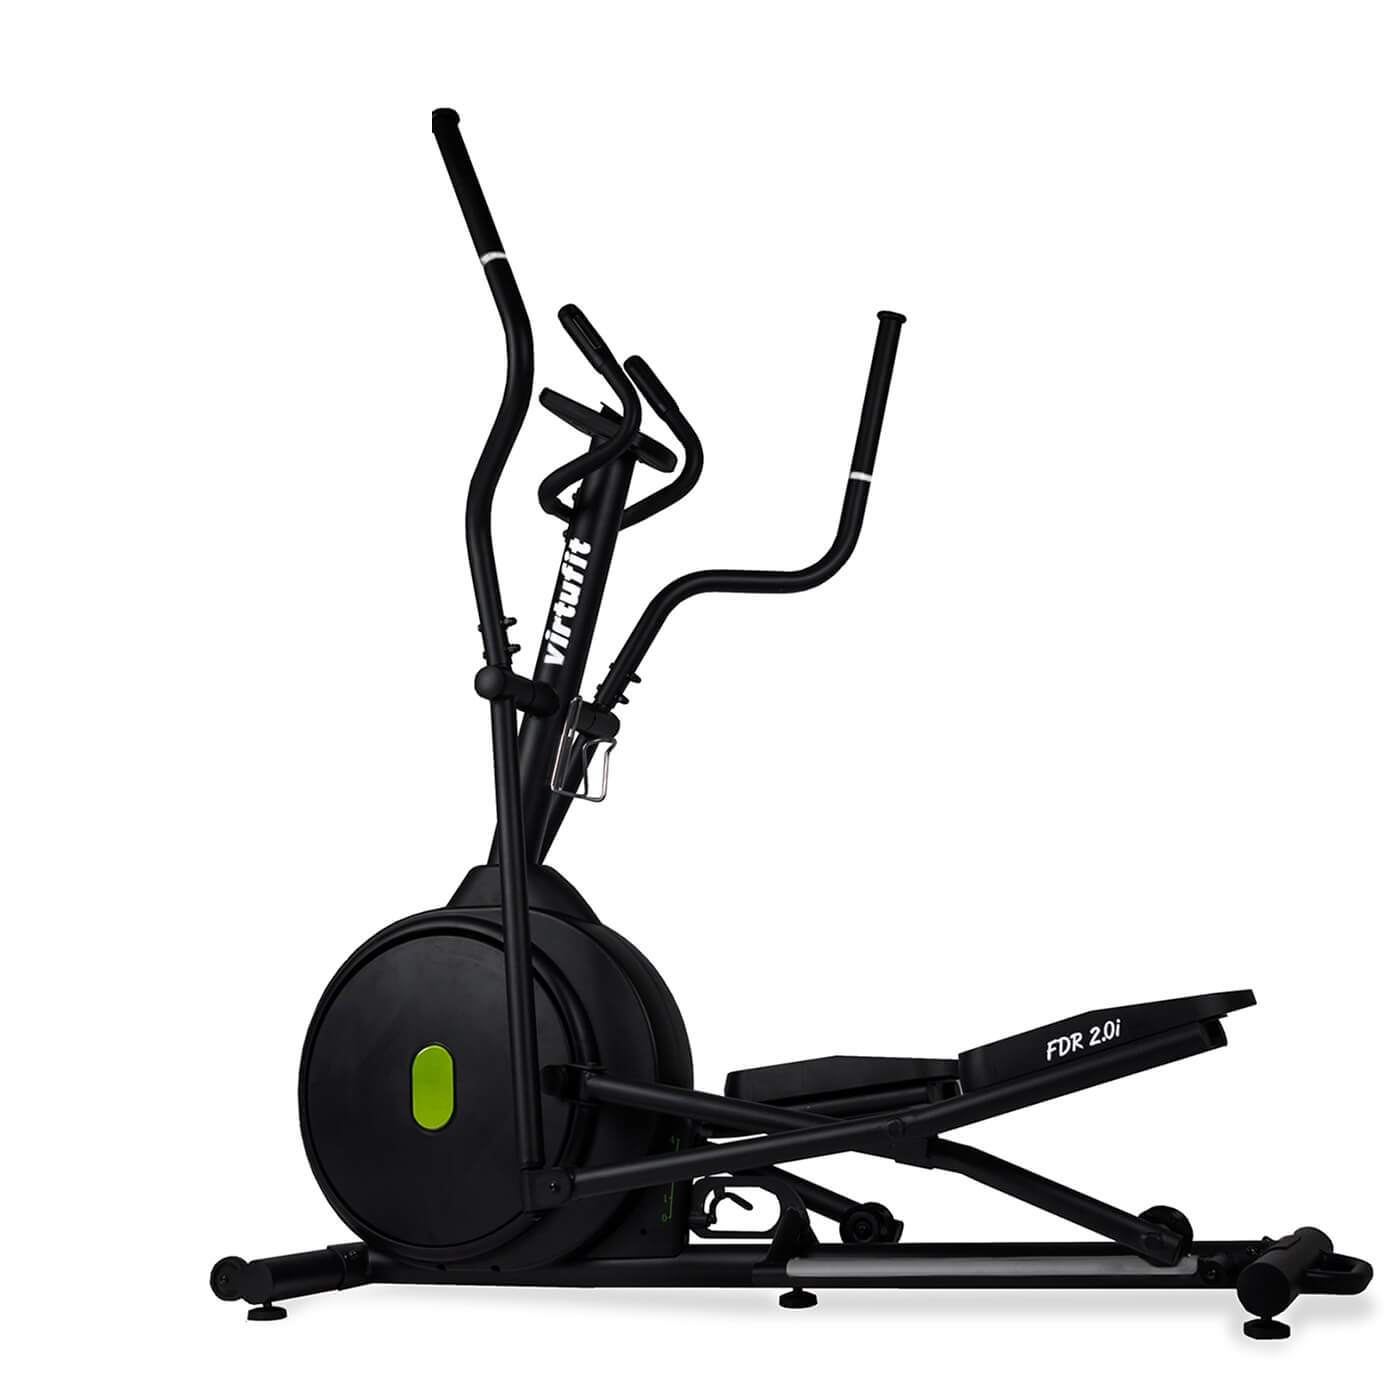 Crosstrainer review